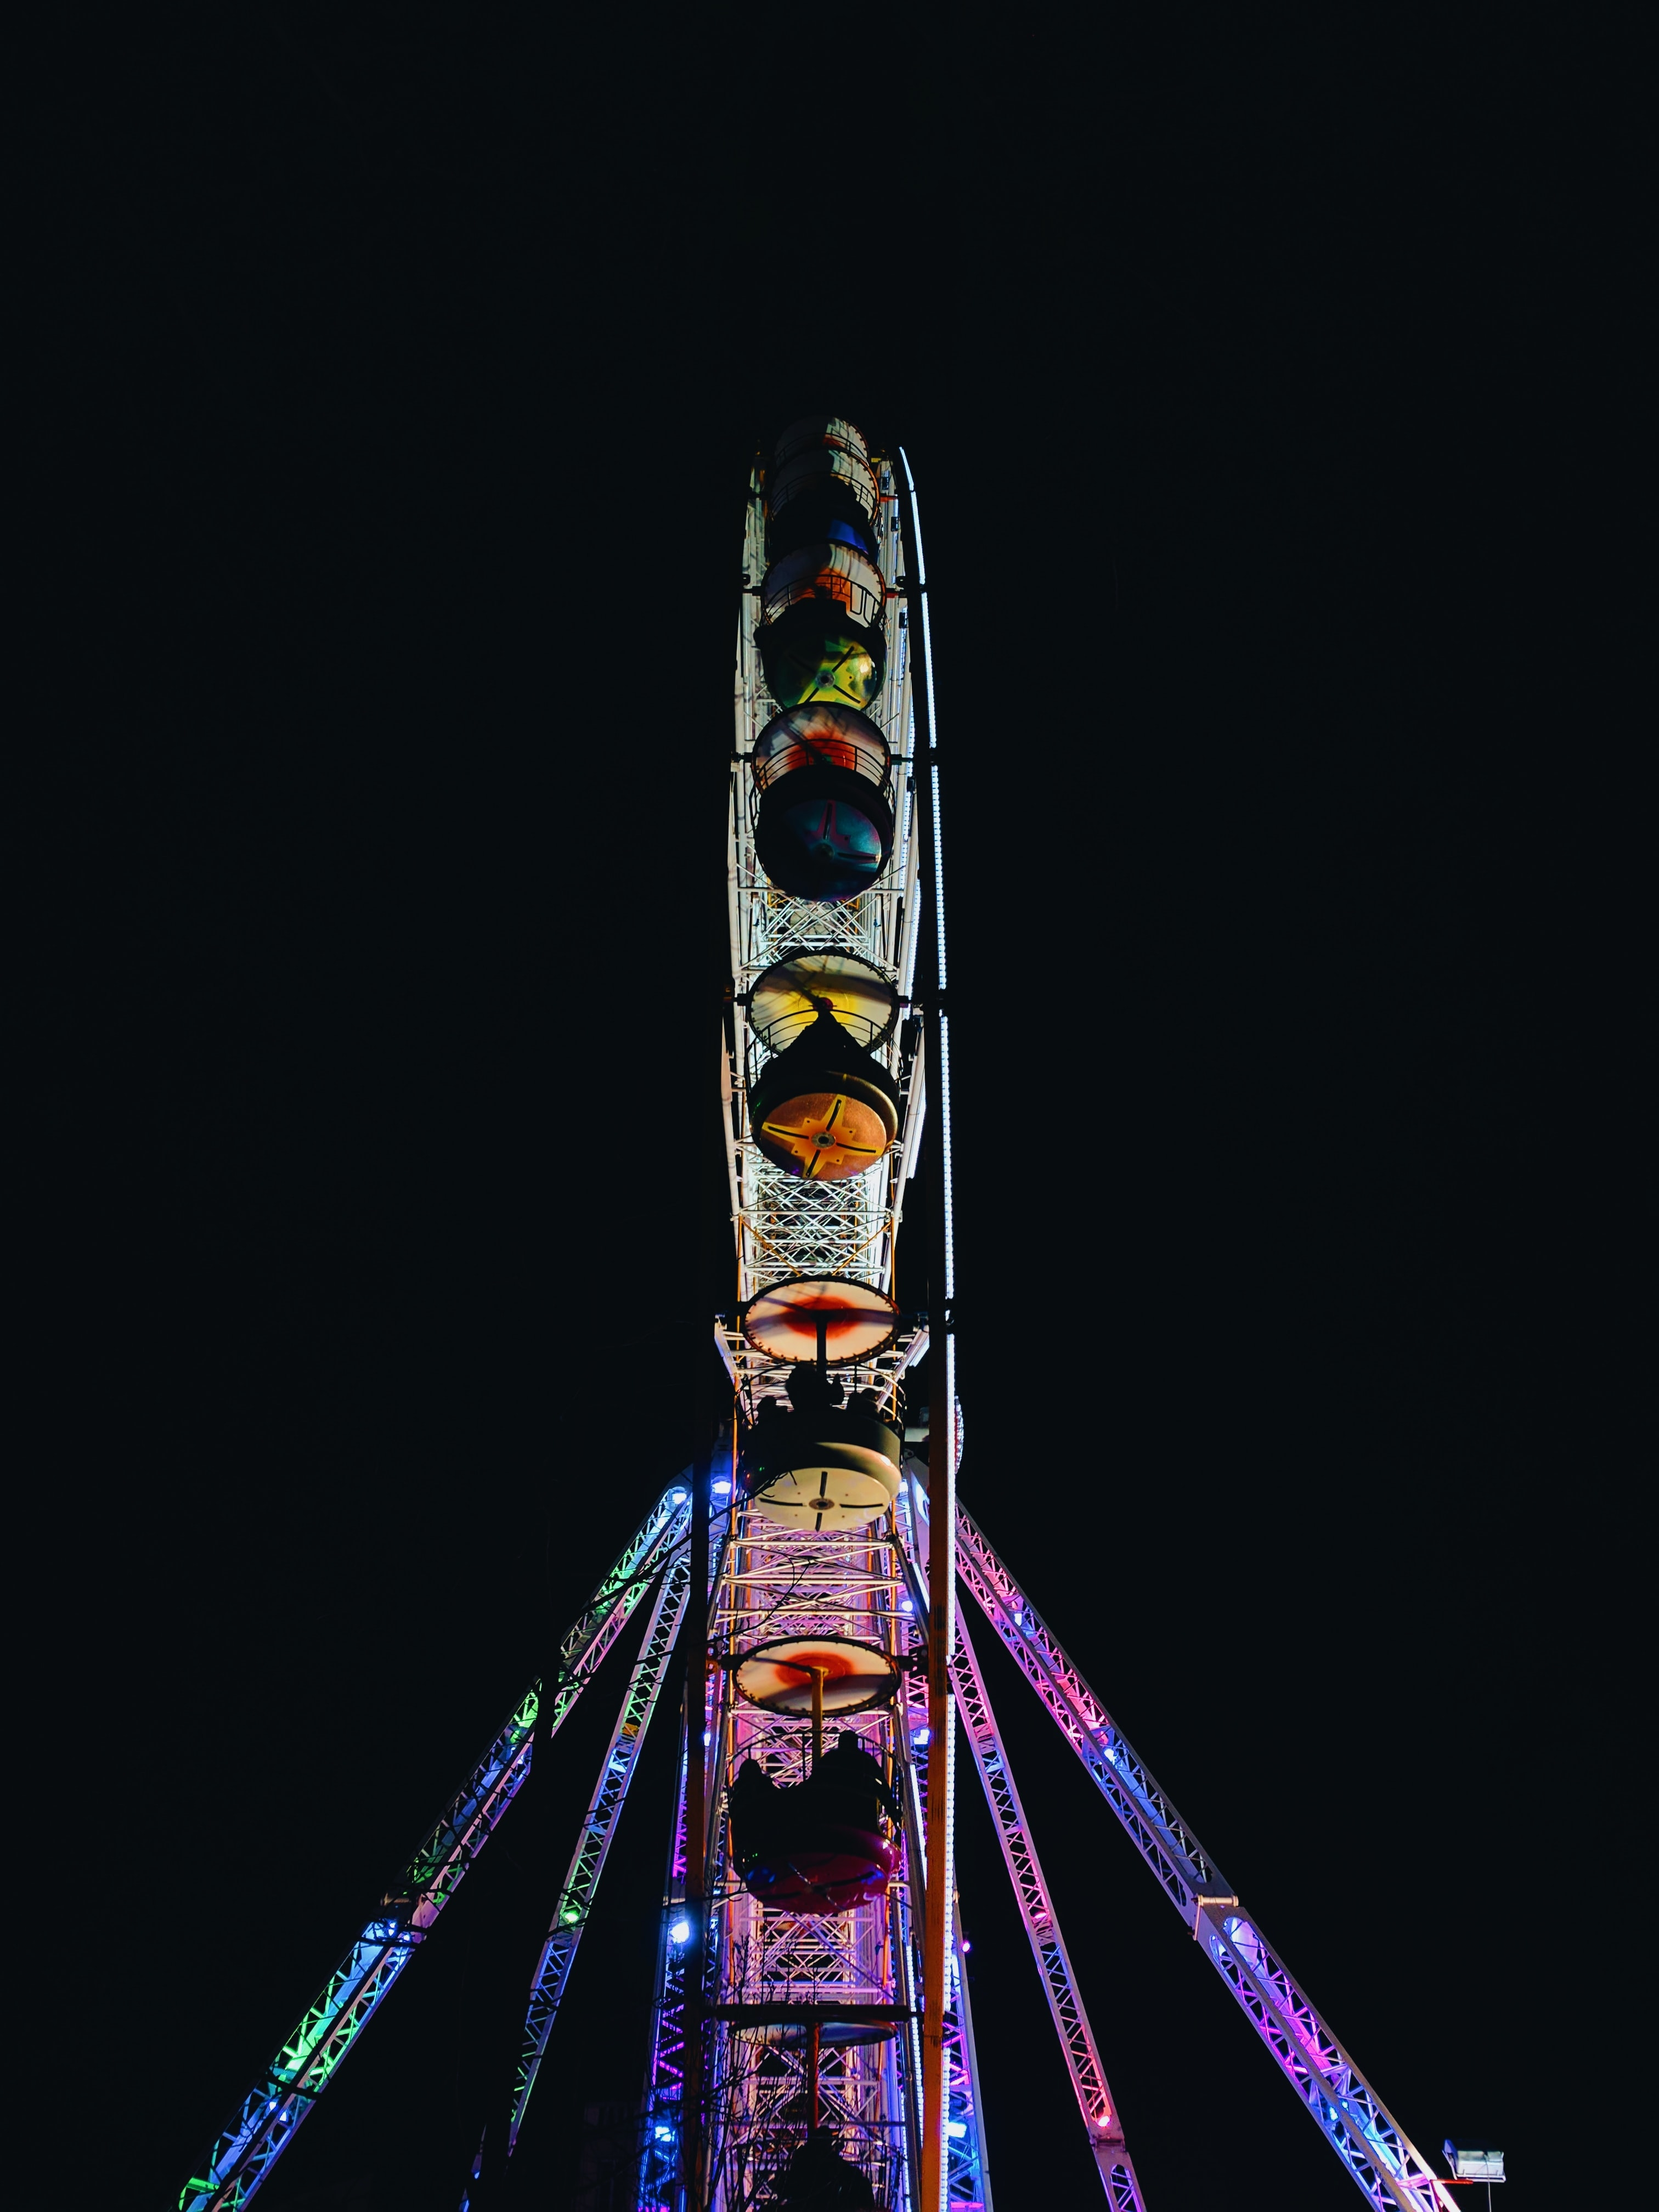 A Ferris wheel at a fairground lit up in bright colors at night